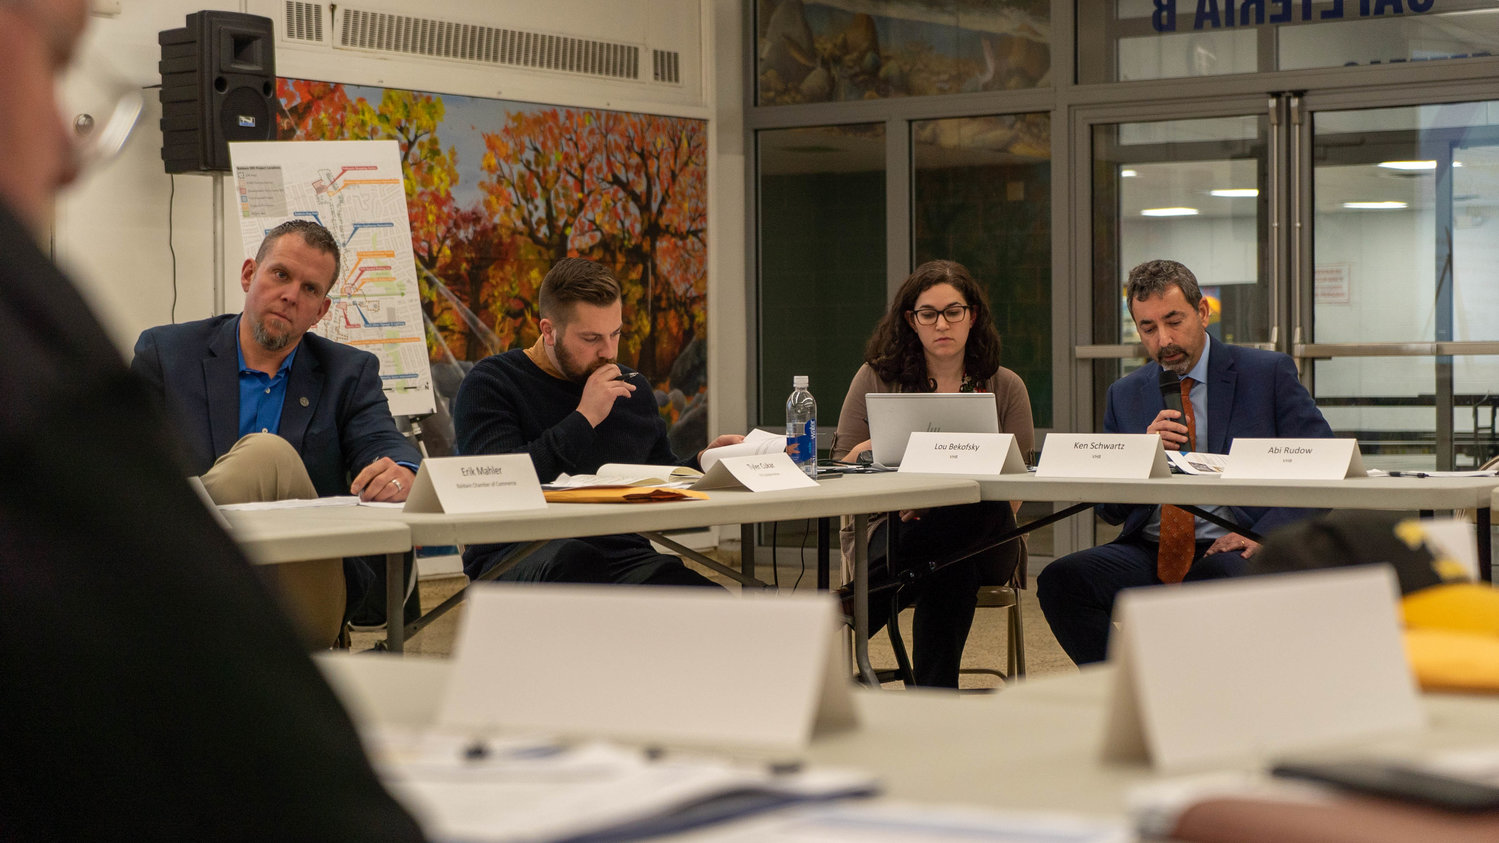 LPC members and consultants narrowed down a list of potential projects for the downtown area.